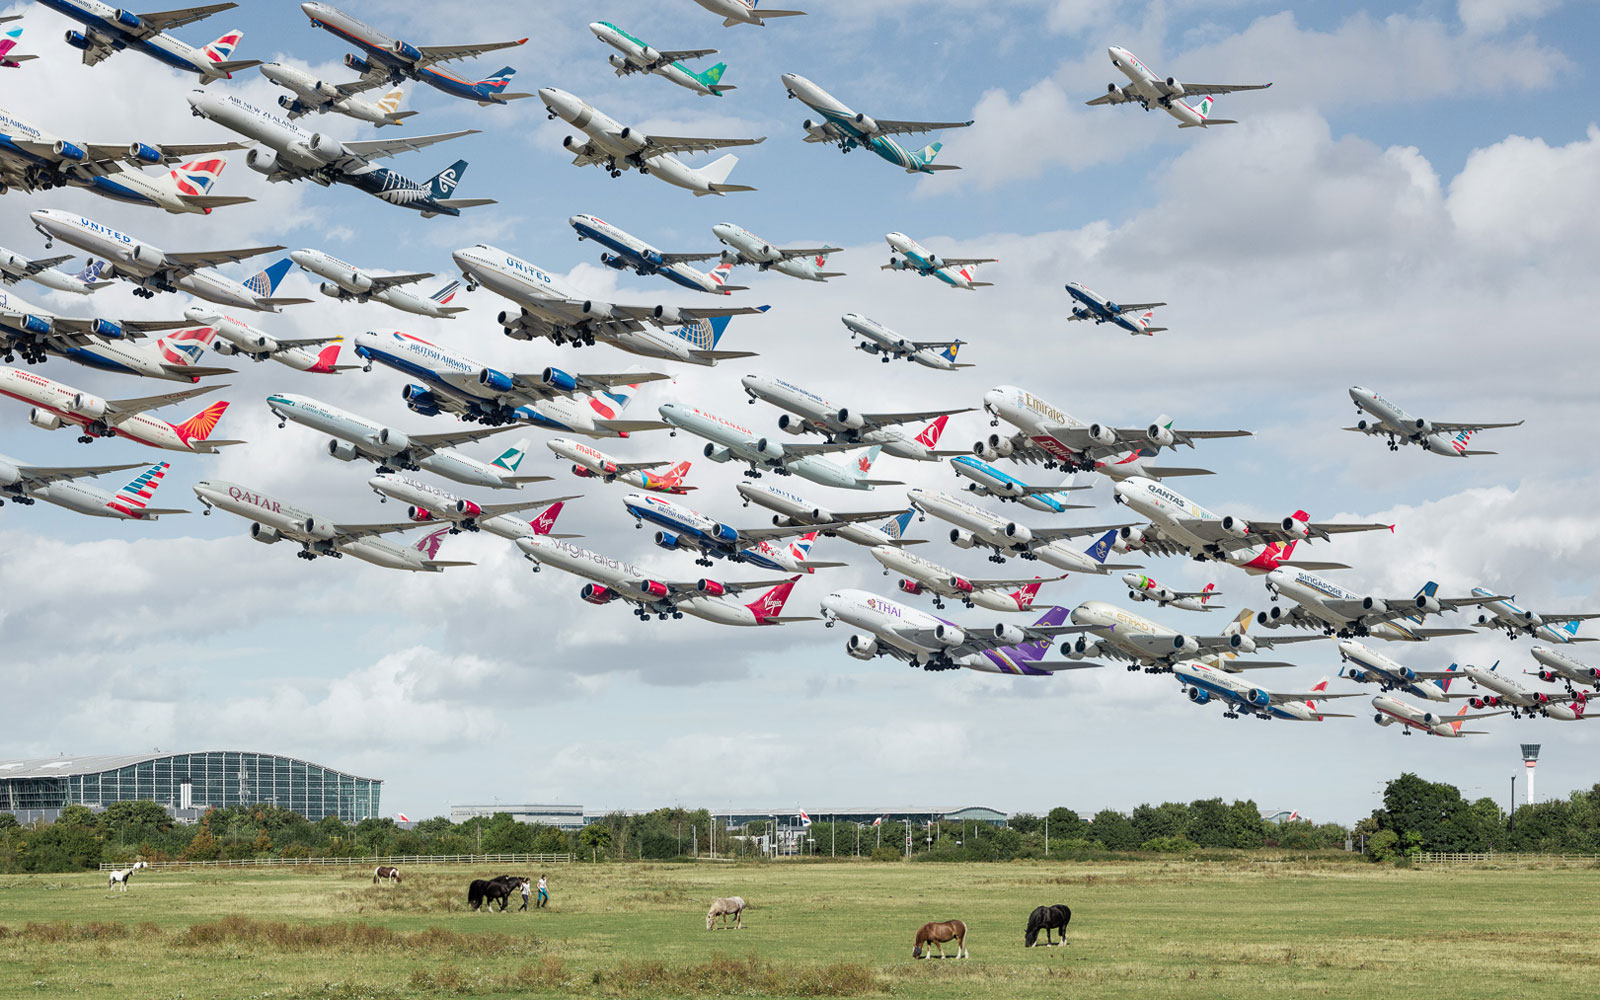 London Heathrow.